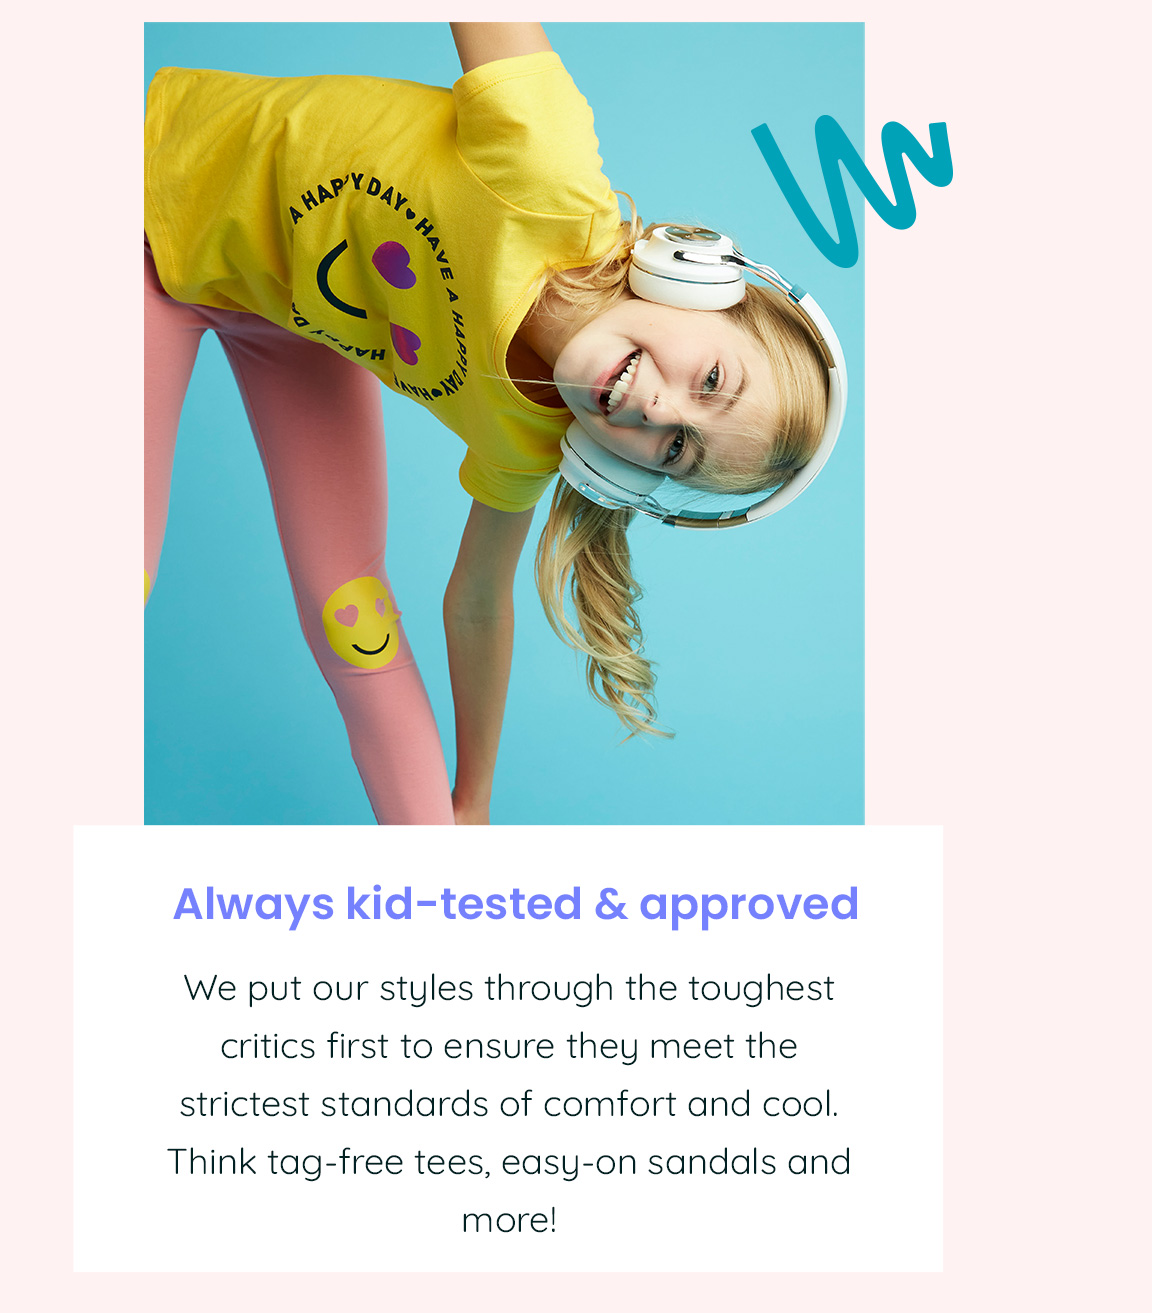 Always kid-tested & approved - We put our styles through the toughest critics first to ensure they meet the strictest standards of comfort and cool. Think tag-free tees, easy-on sandals and more!